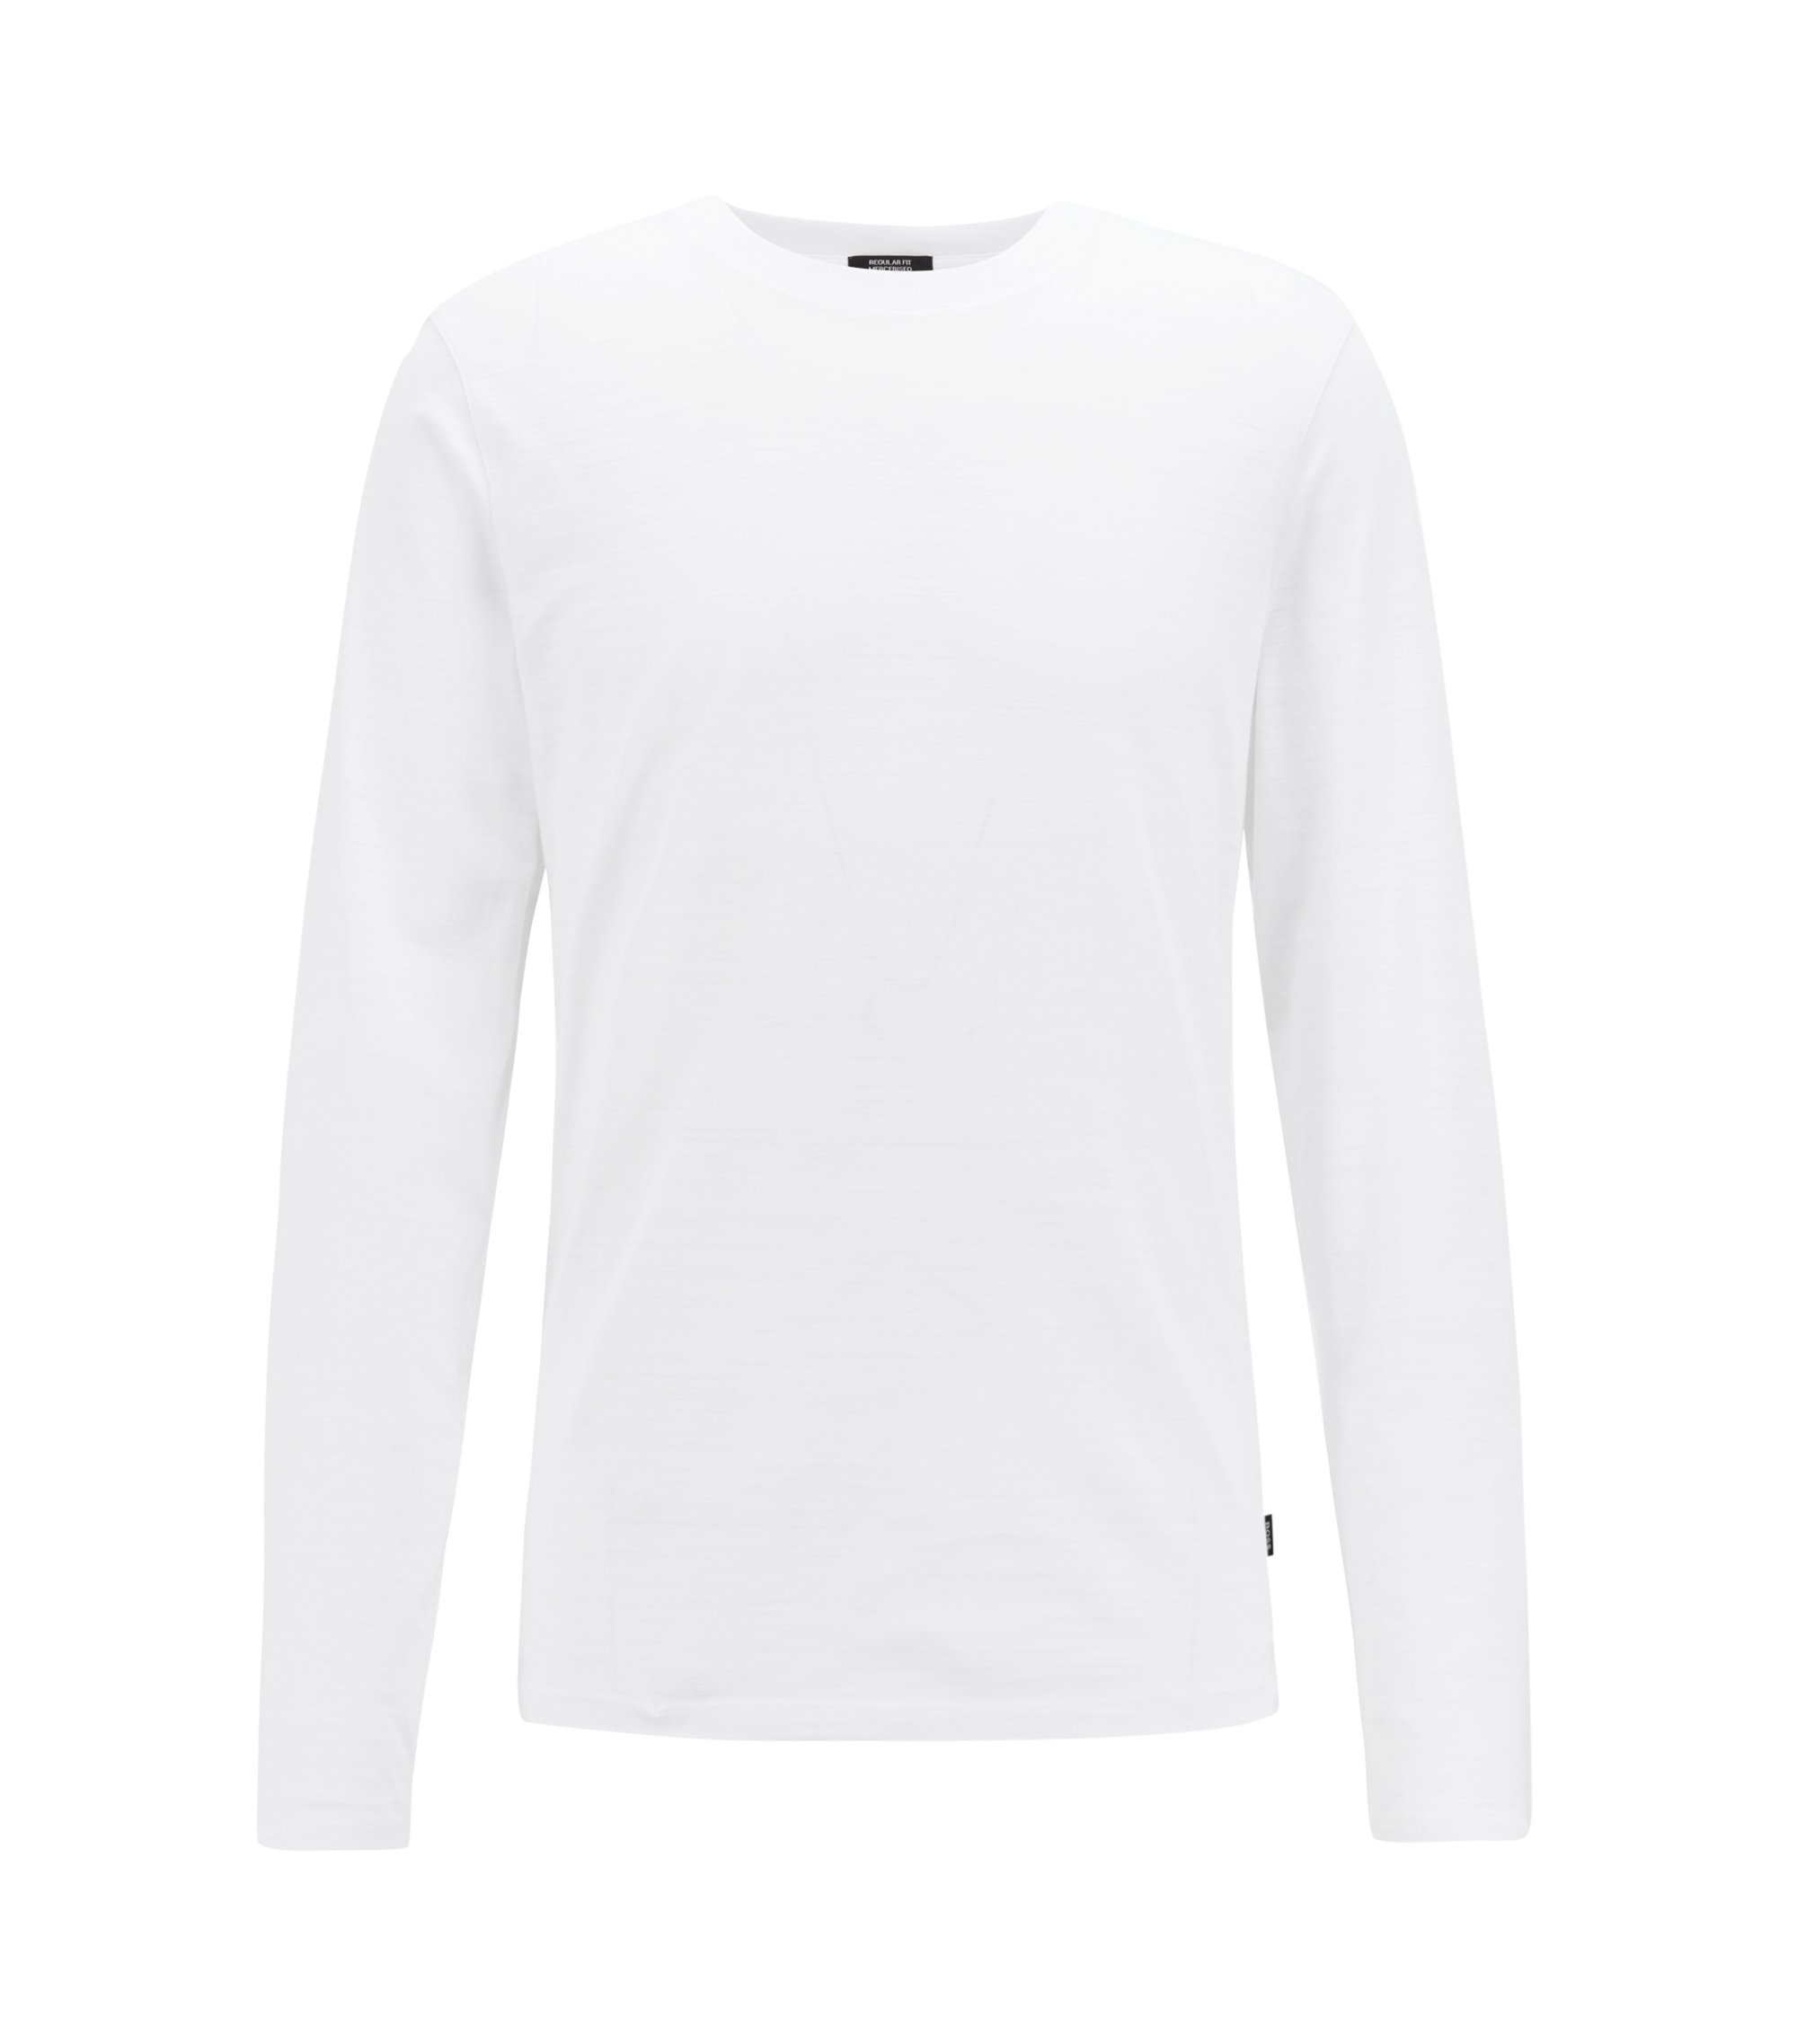 Camiseta slim fit de manga larga en algodón flameado mercerizado, Blanco